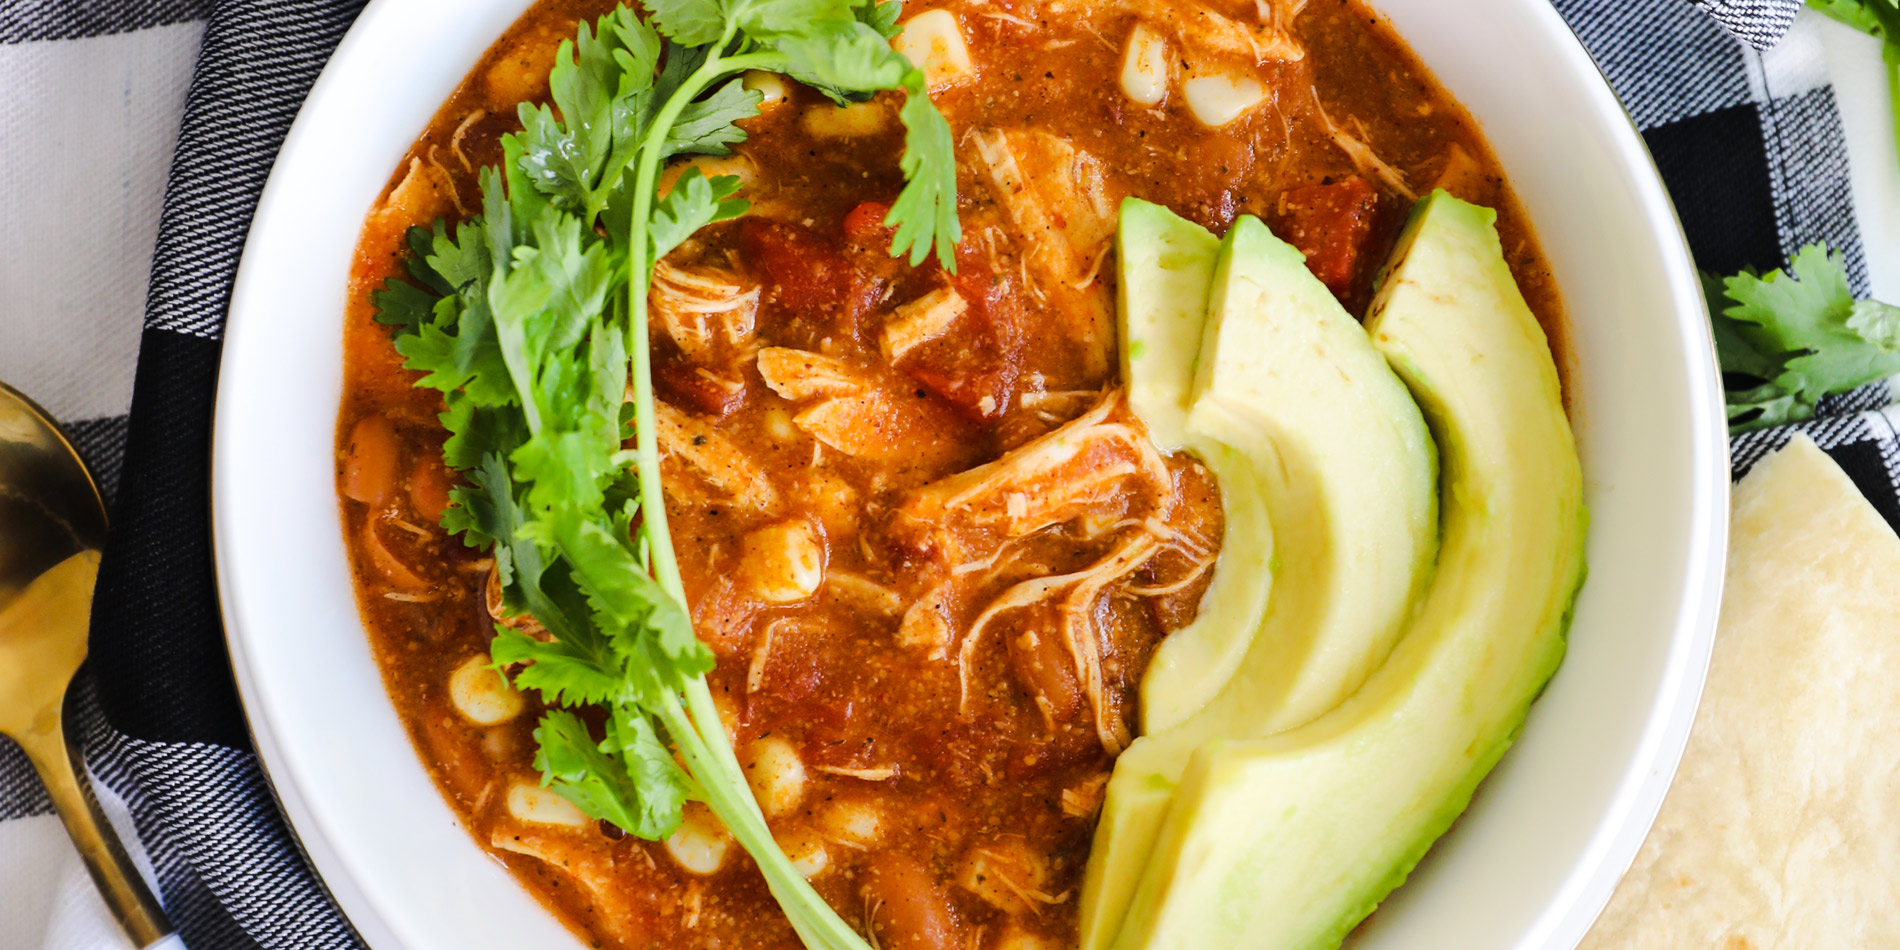 Chipotle Chicken Enchilada Soup in a white bowl with avocado and cilantro and tortillas on a checkered cloth